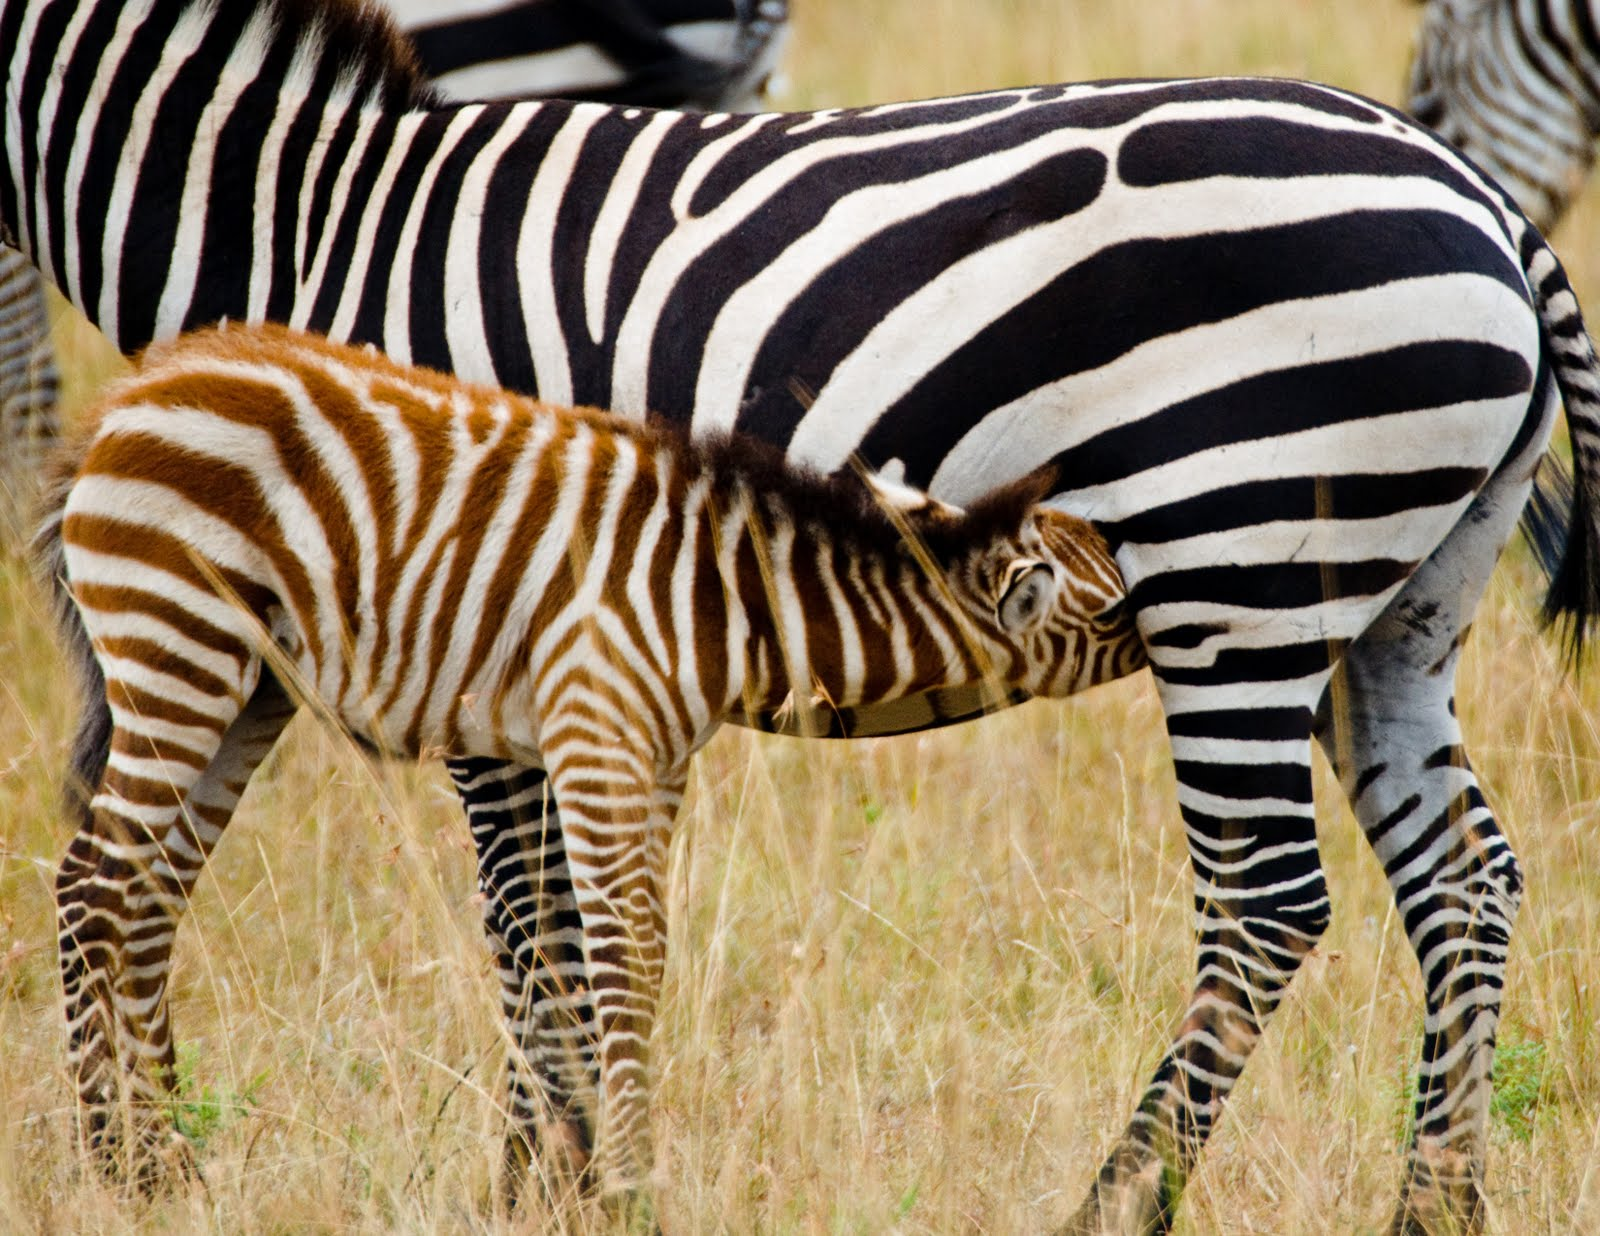 the baby zebra free national geographic pix. Black Bedroom Furniture Sets. Home Design Ideas